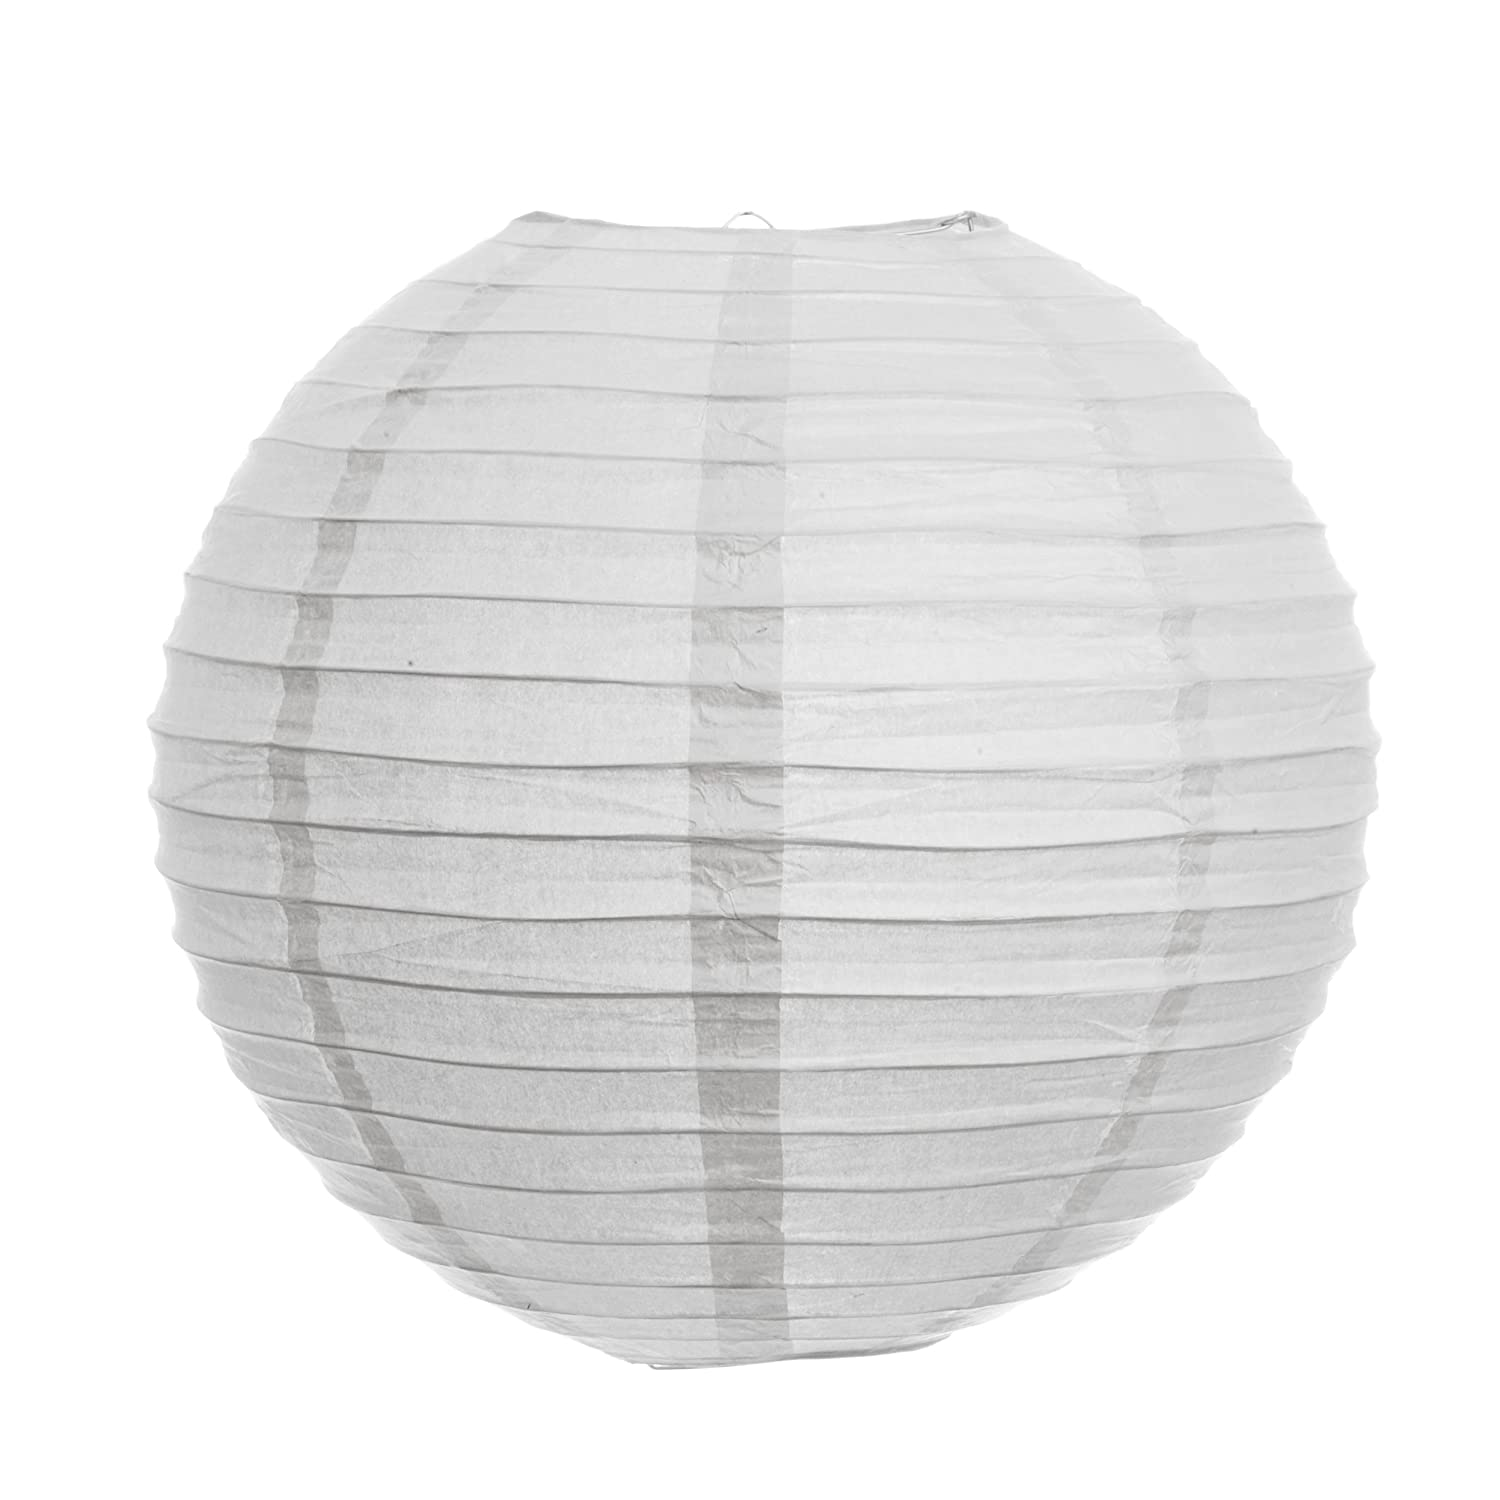 Amazon.com: Koyal 8-Inch Paper Lantern, Cherry Blossom Pink: Home ...